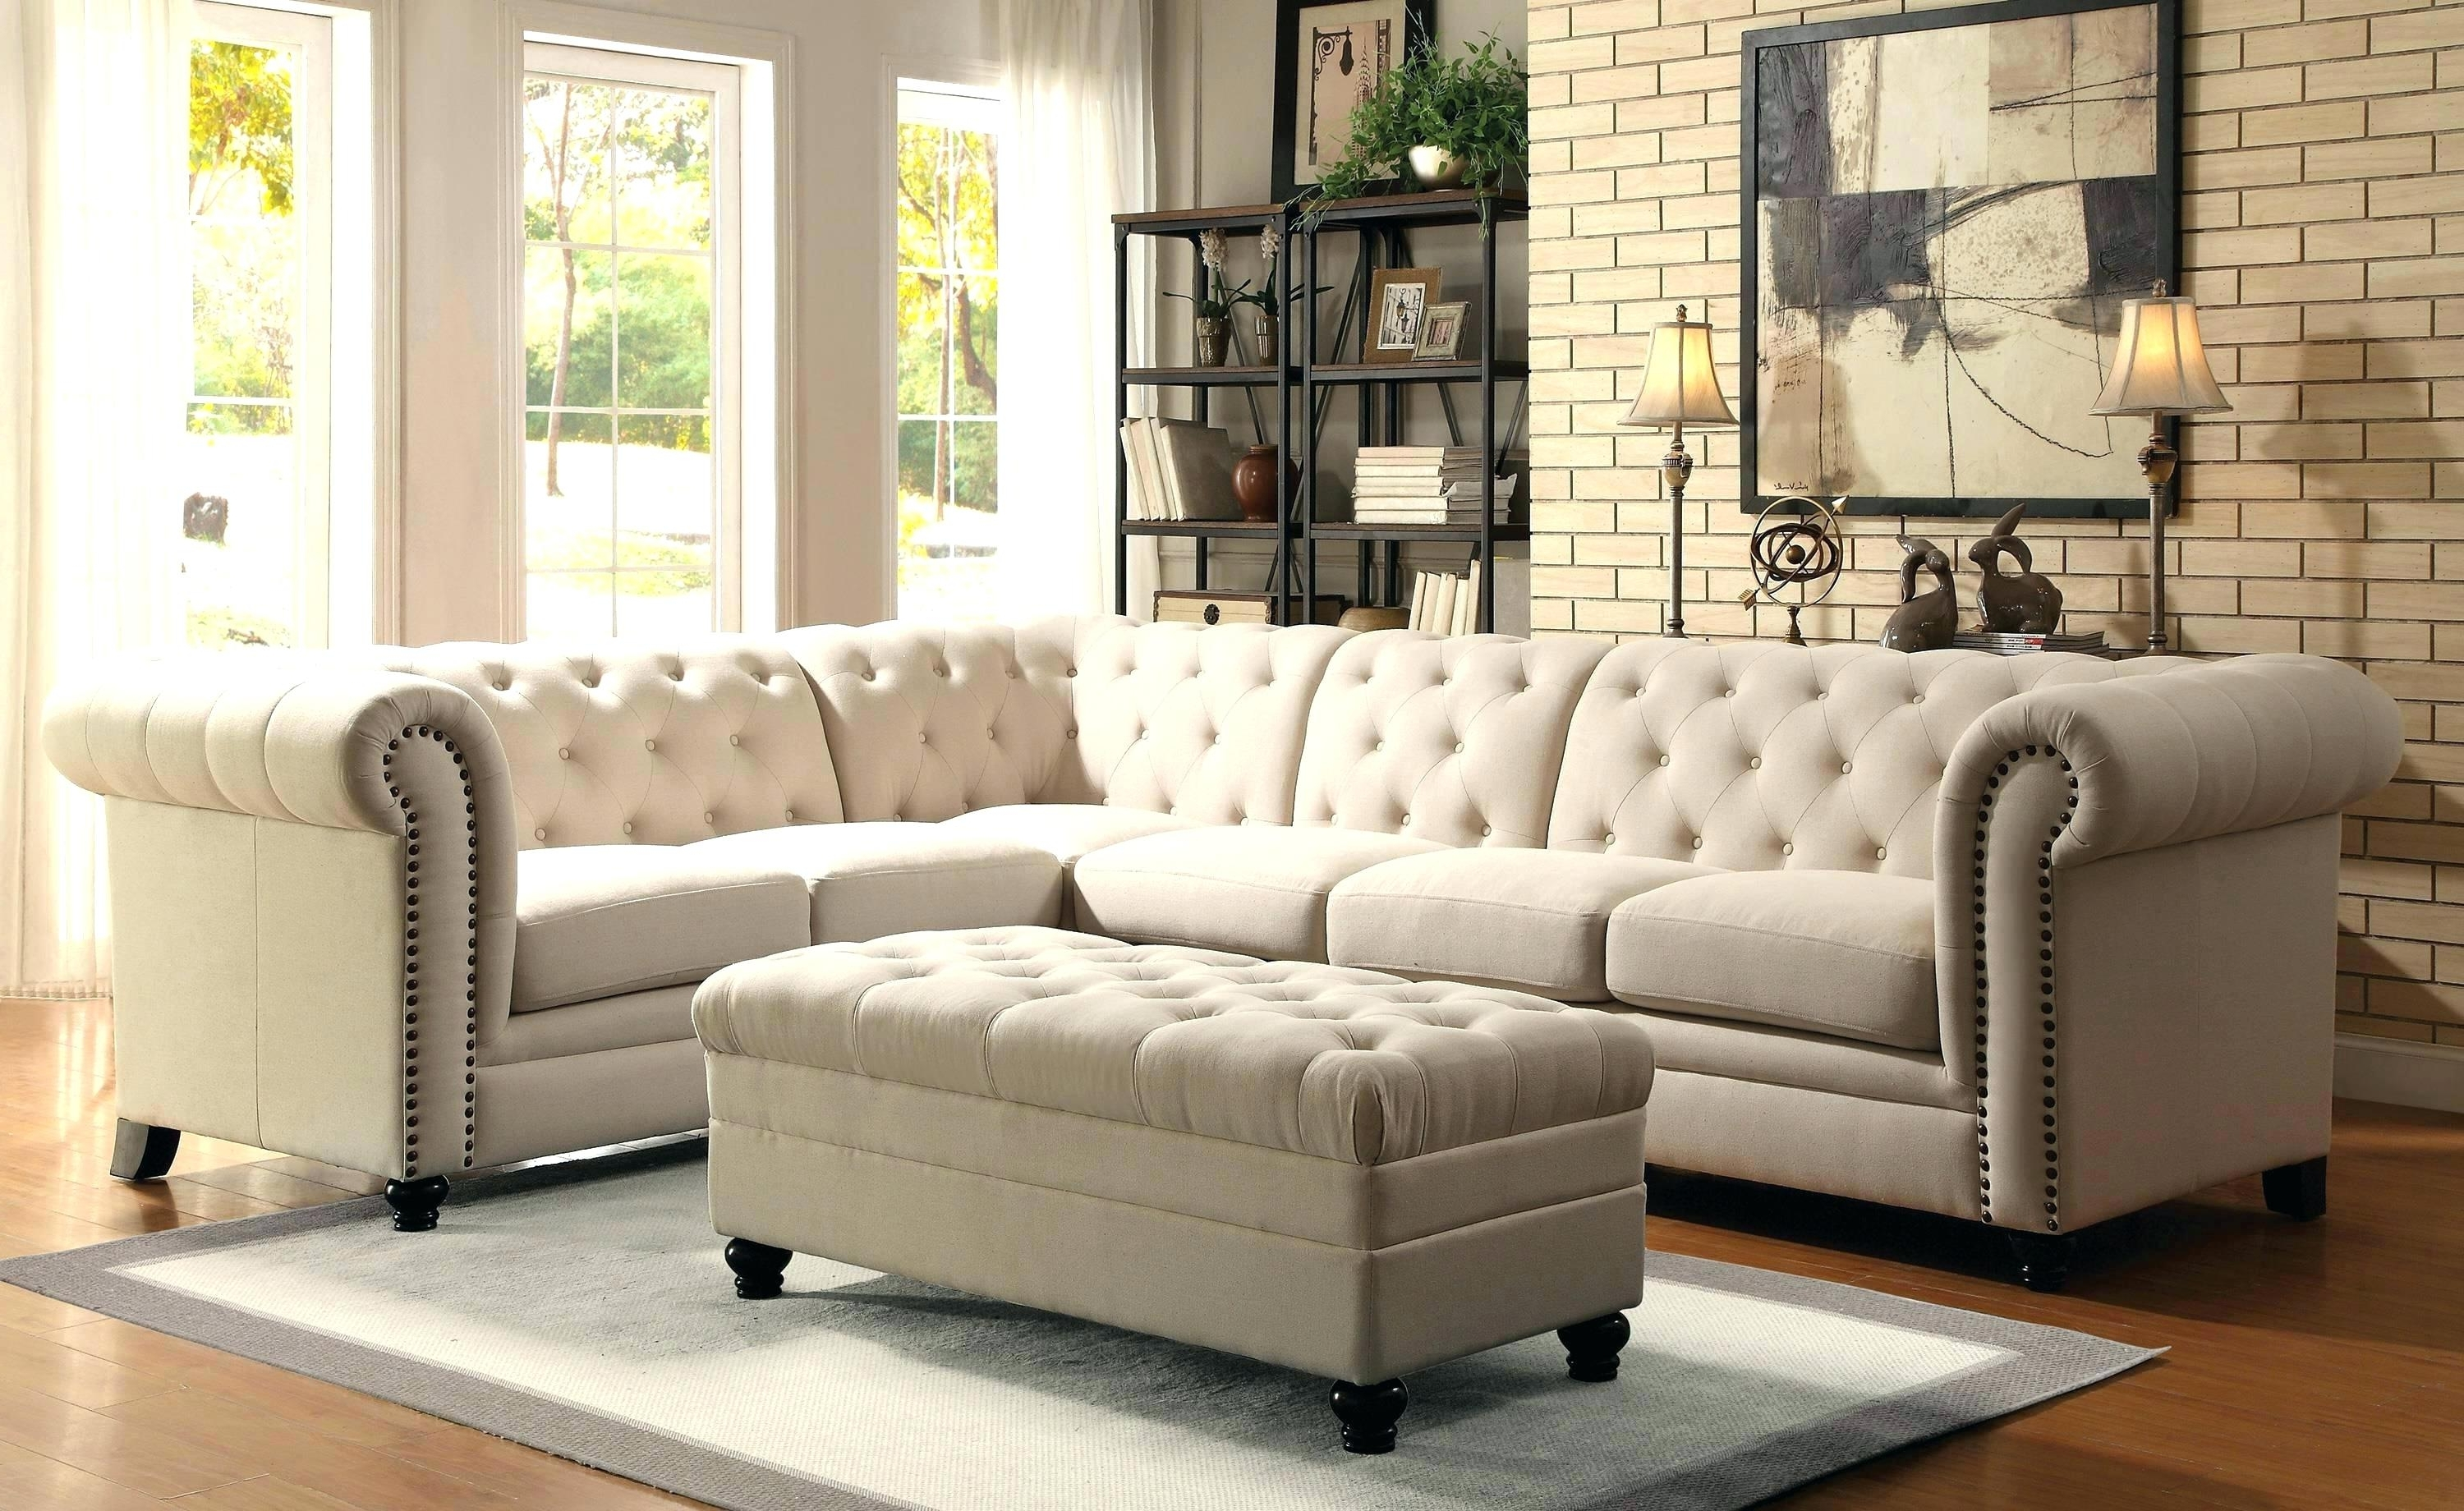 Dallas Sectional Sofas In Fashionable Sectional Sofas Dallas Leather Sofa Tx Area – Province De Liege (View 3 of 15)